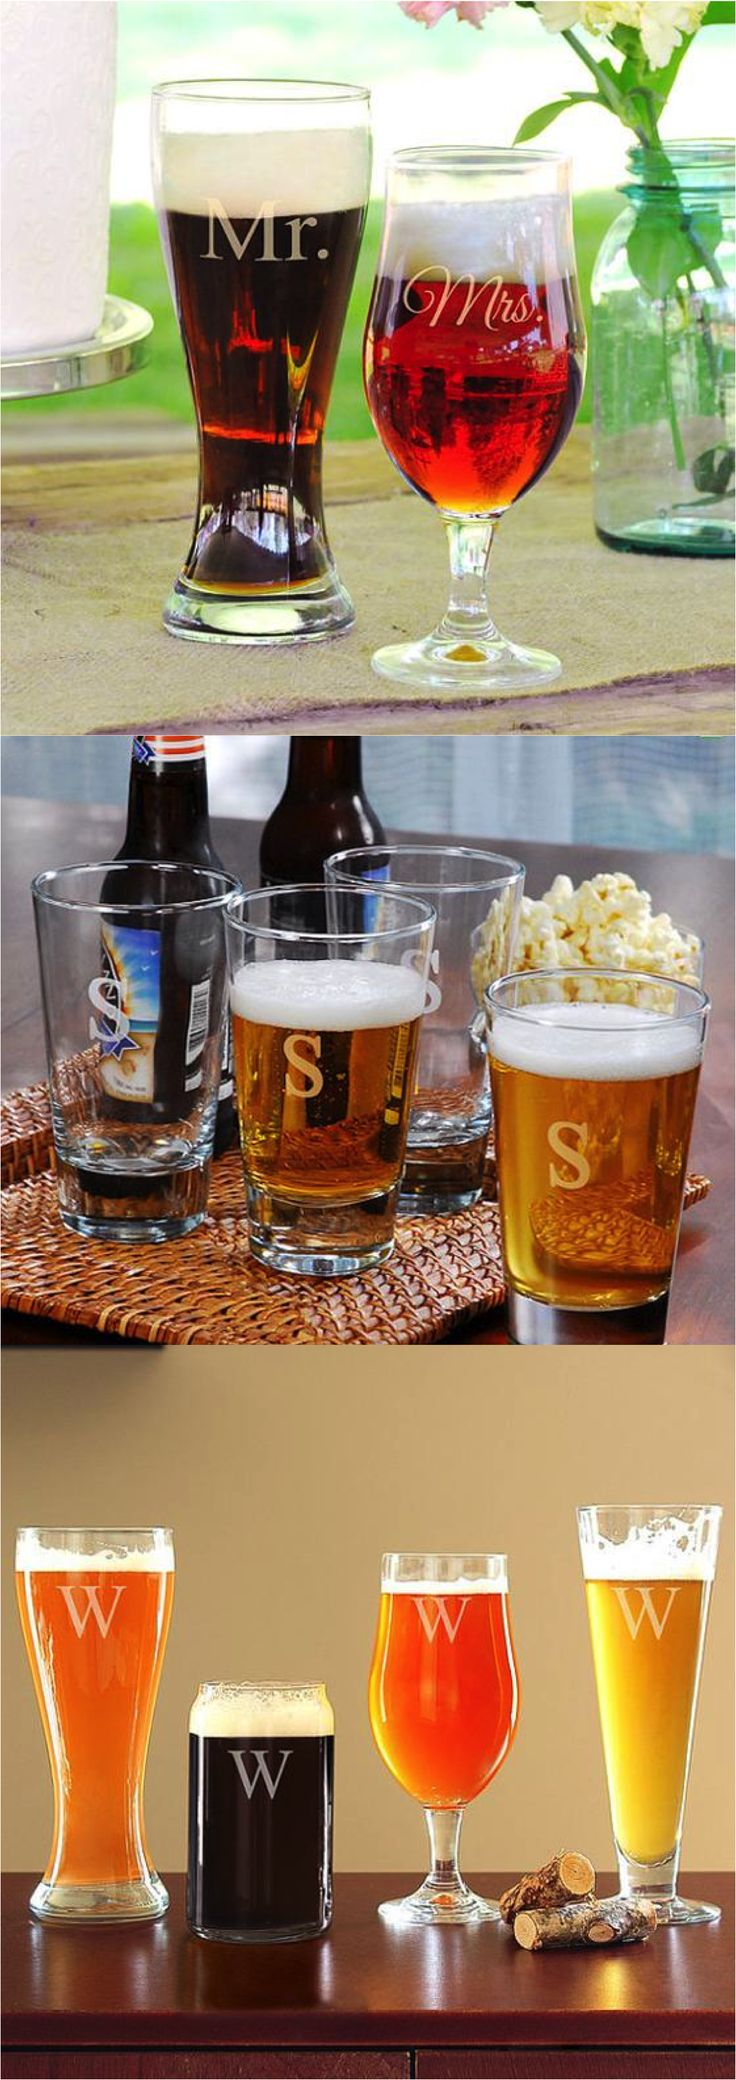 You'll be the classiest beer drinker in town with these personalized beer glasses made in various shapes & sizes. A great gift for the guy's guy or the couple who loves beer! | Made on Hatch.co by independent designers & makers who care.